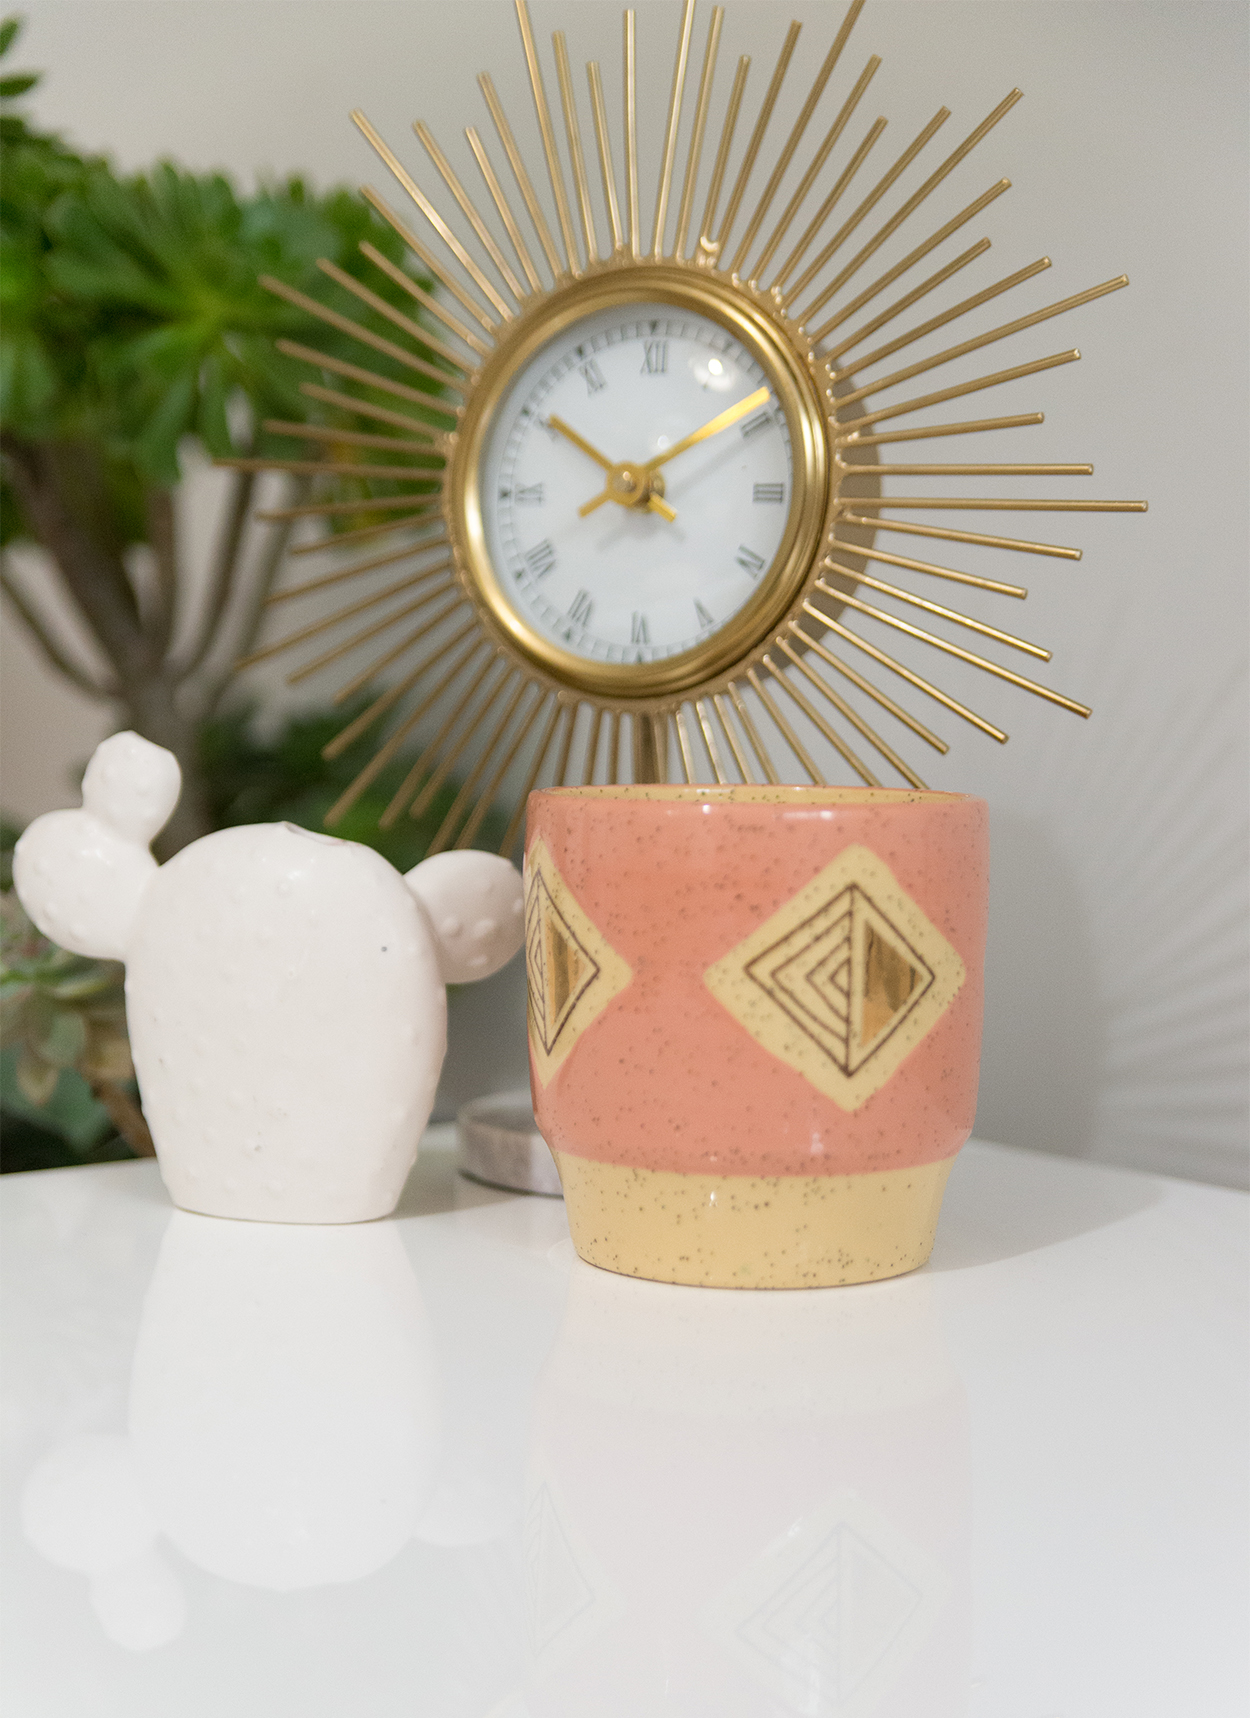 gold sunburst clock with a pink ceramic cup and a ceramic cactus sitting on the table